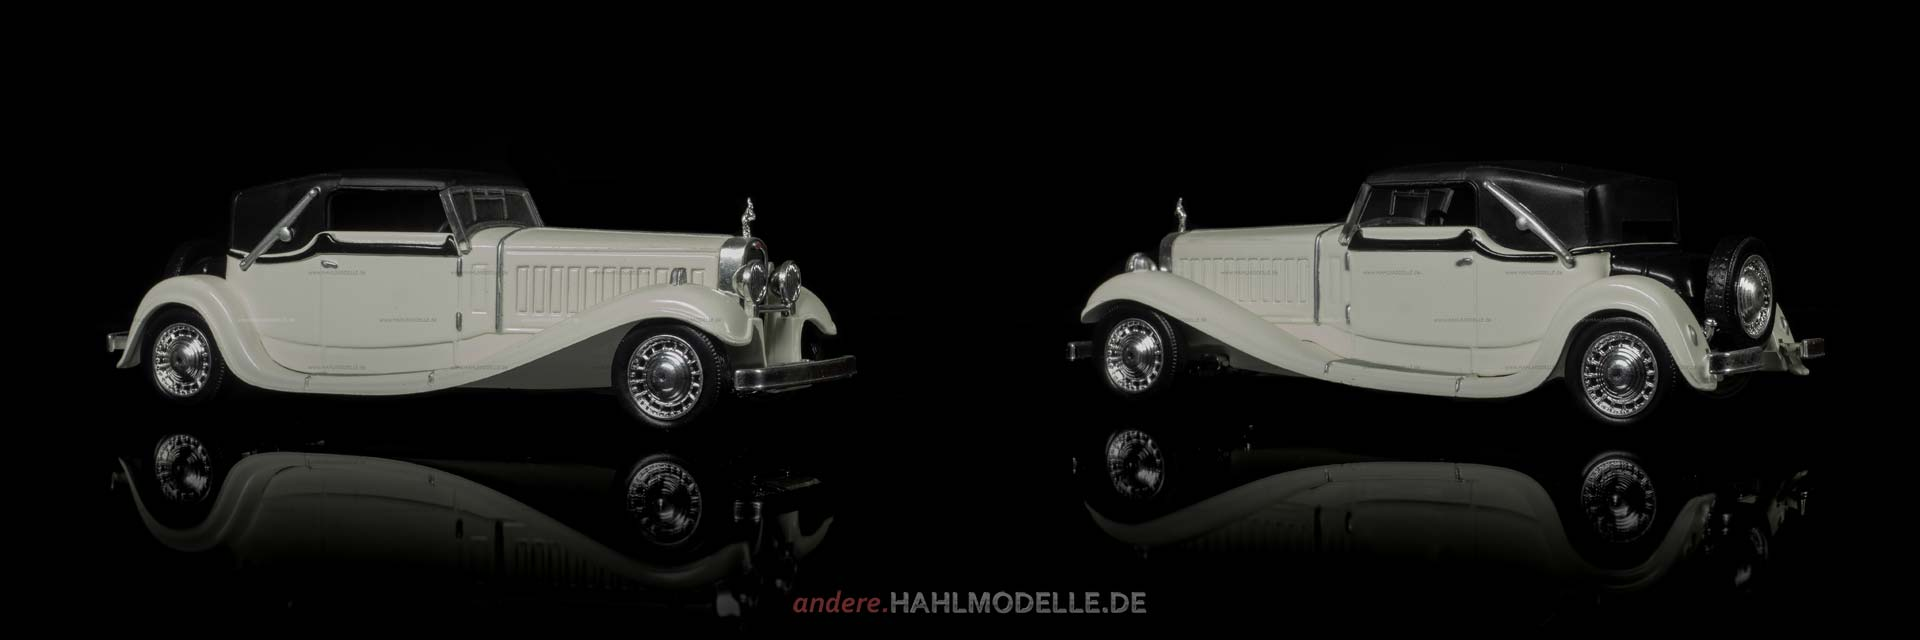 Bugatti Type 41 Royale | Cabriolet | Ixo (Del Prado Car Collection) | 1:43 | www.andere.hahlmodelle.de